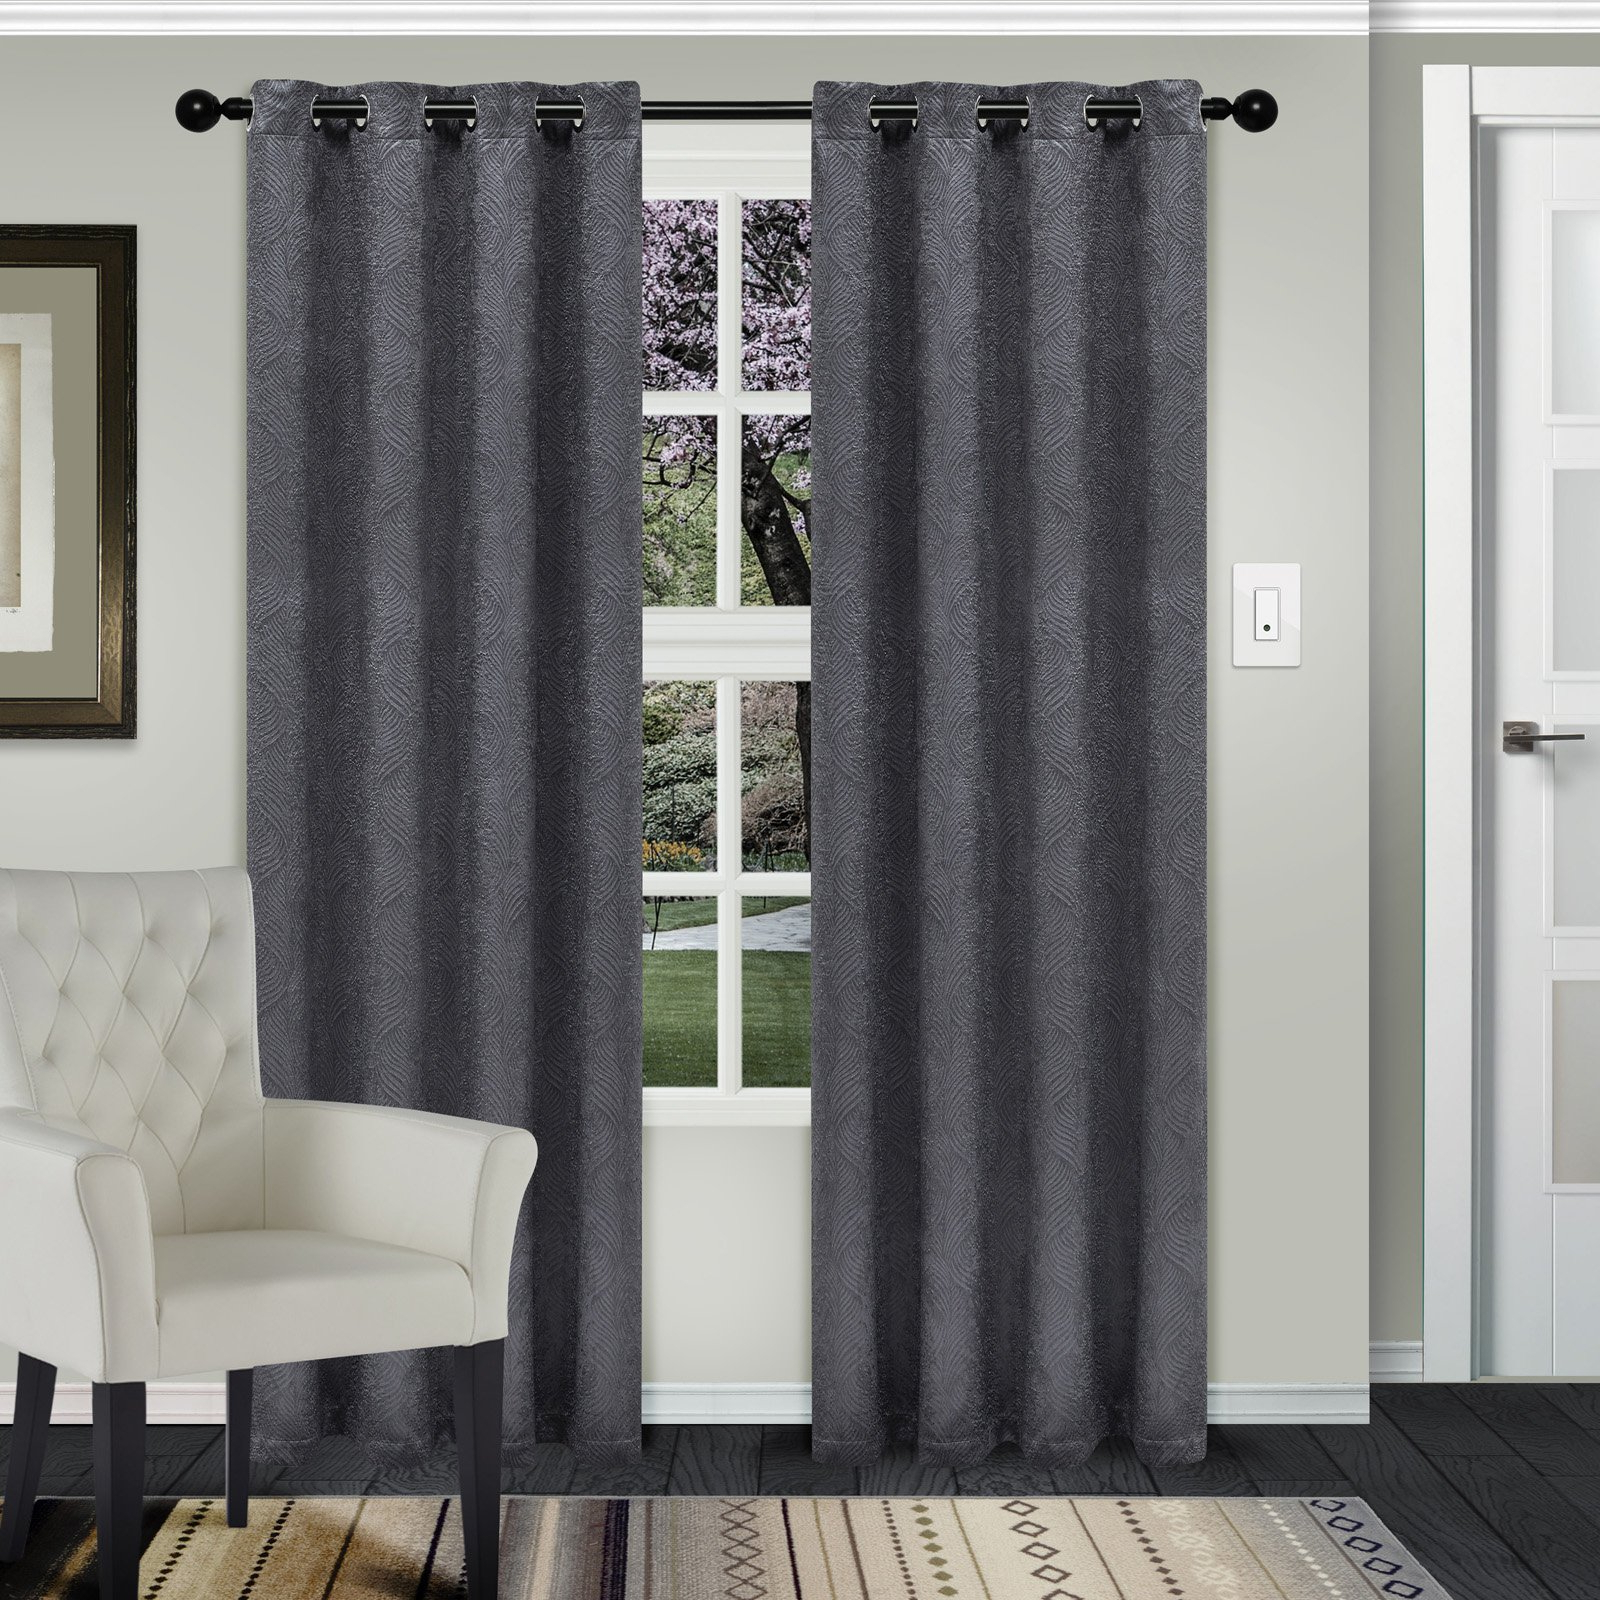 2020 Superior Waverly Blackout 2 Panel Curtains Silver In 2019 With Superior Leaves Insulated Thermal Blackout Grommet Curtain Panel Pairs (View 1 of 20)